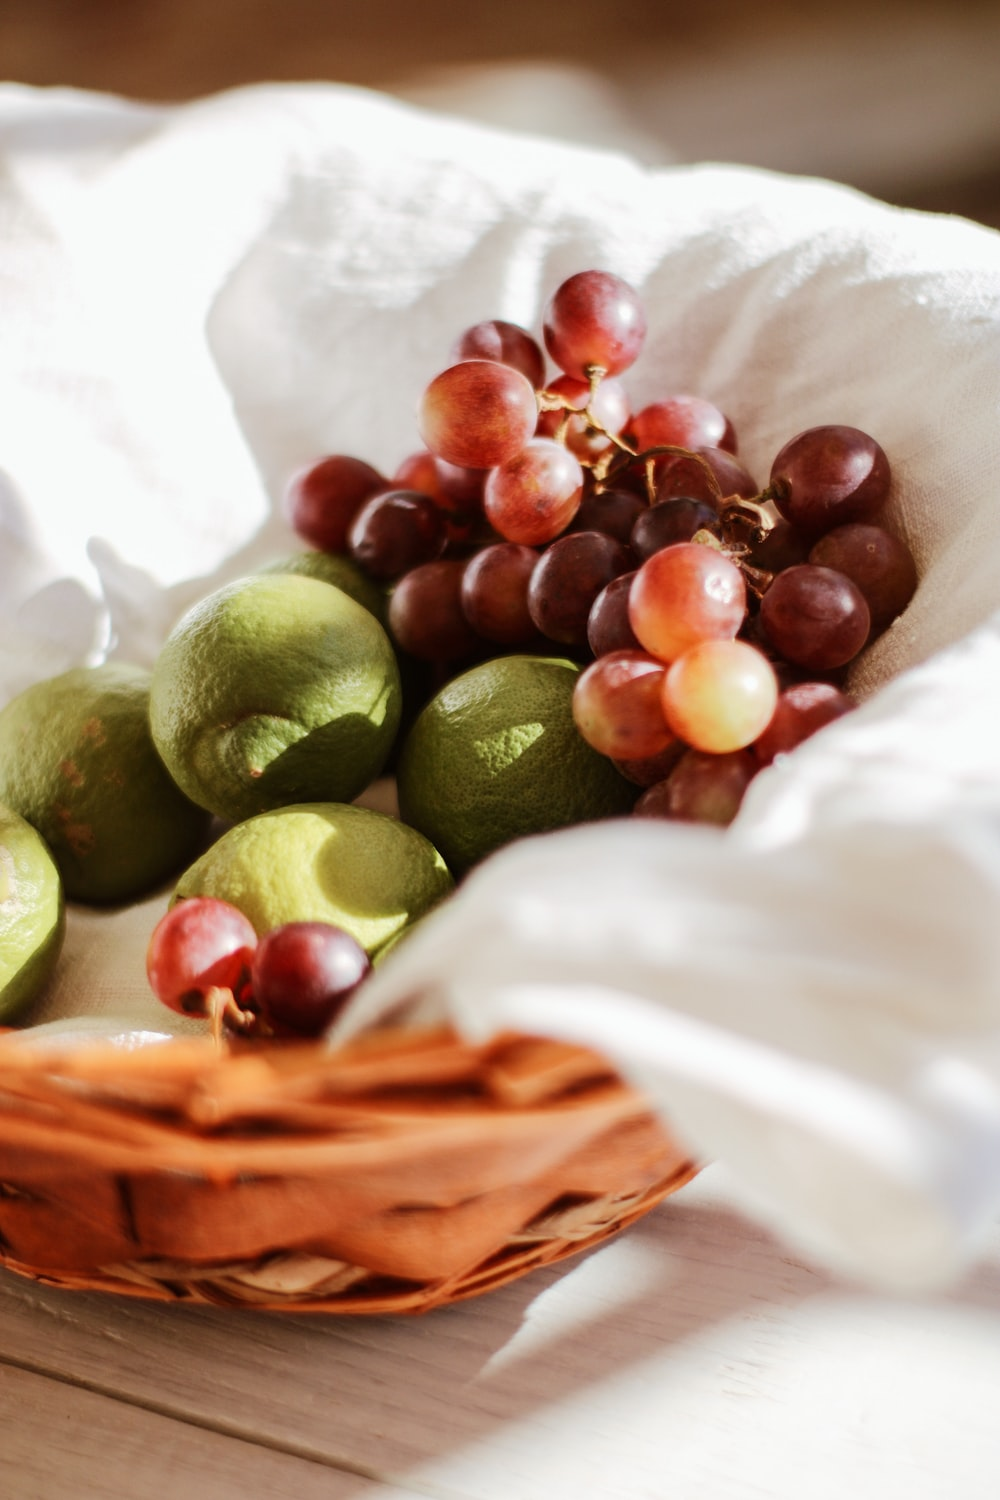 green and brown fruits on brown woven basket